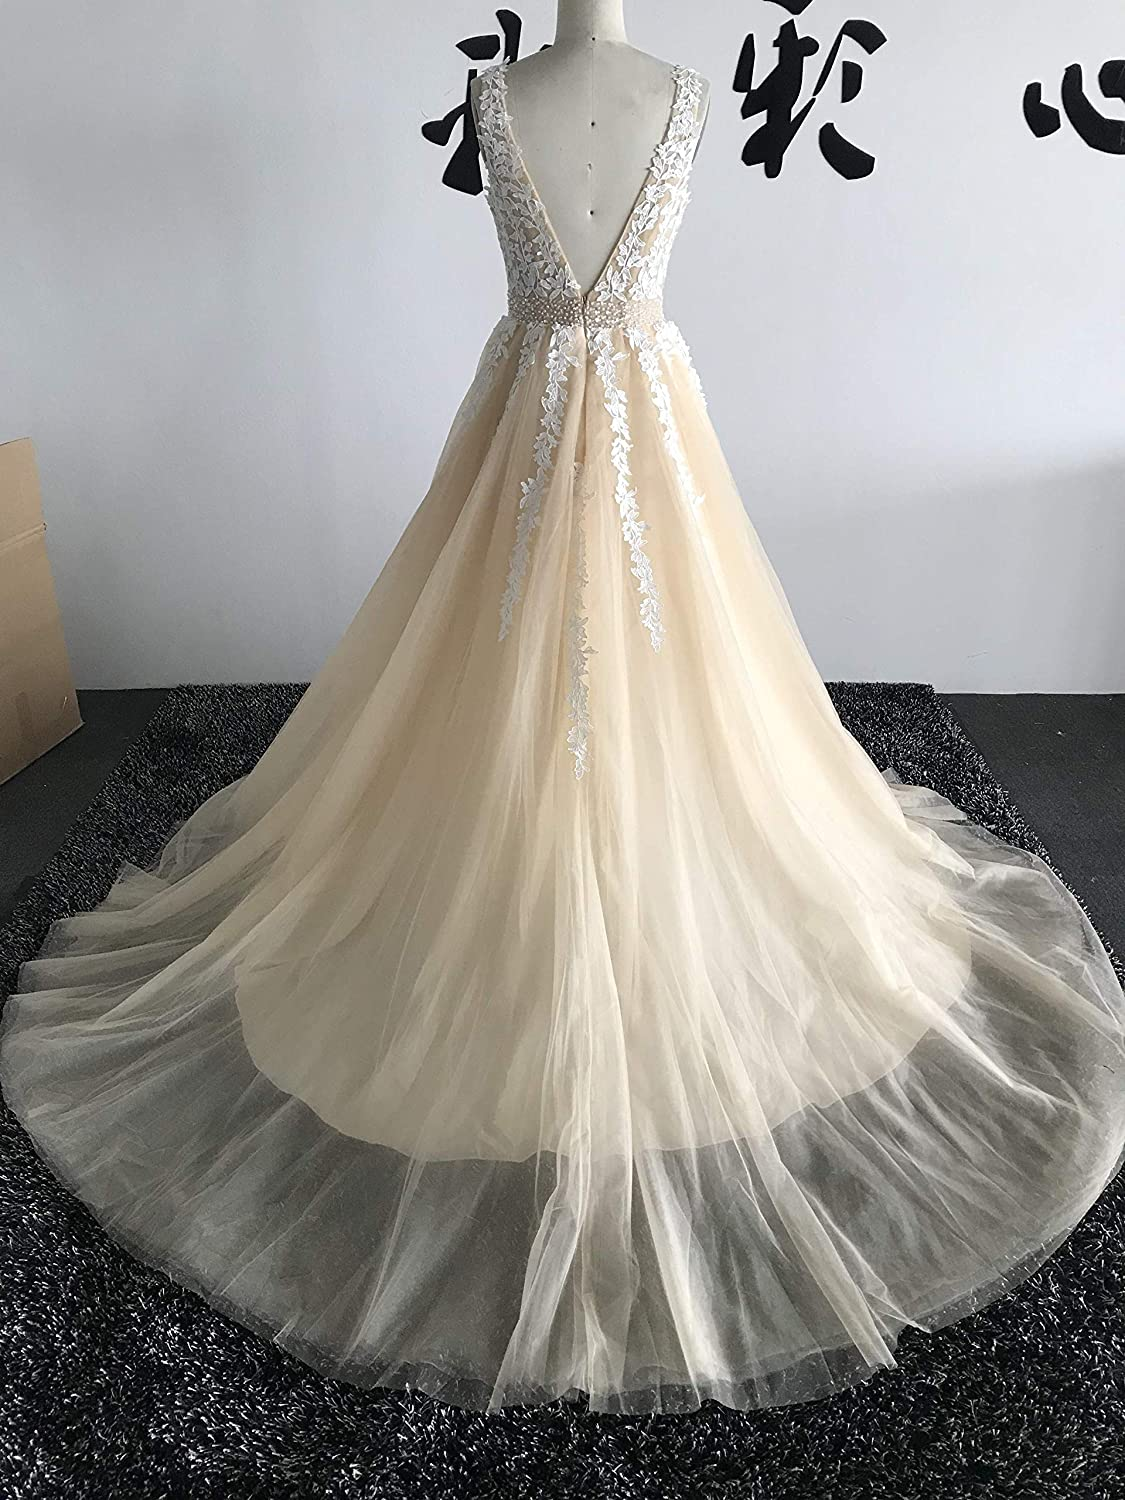 1c6ab7df3 Abaowedding Women's Wedding Dress for Bride Lace Applique Evening Dress V  Neck Straps Ball Gowns at Amazon Women's Clothing store: